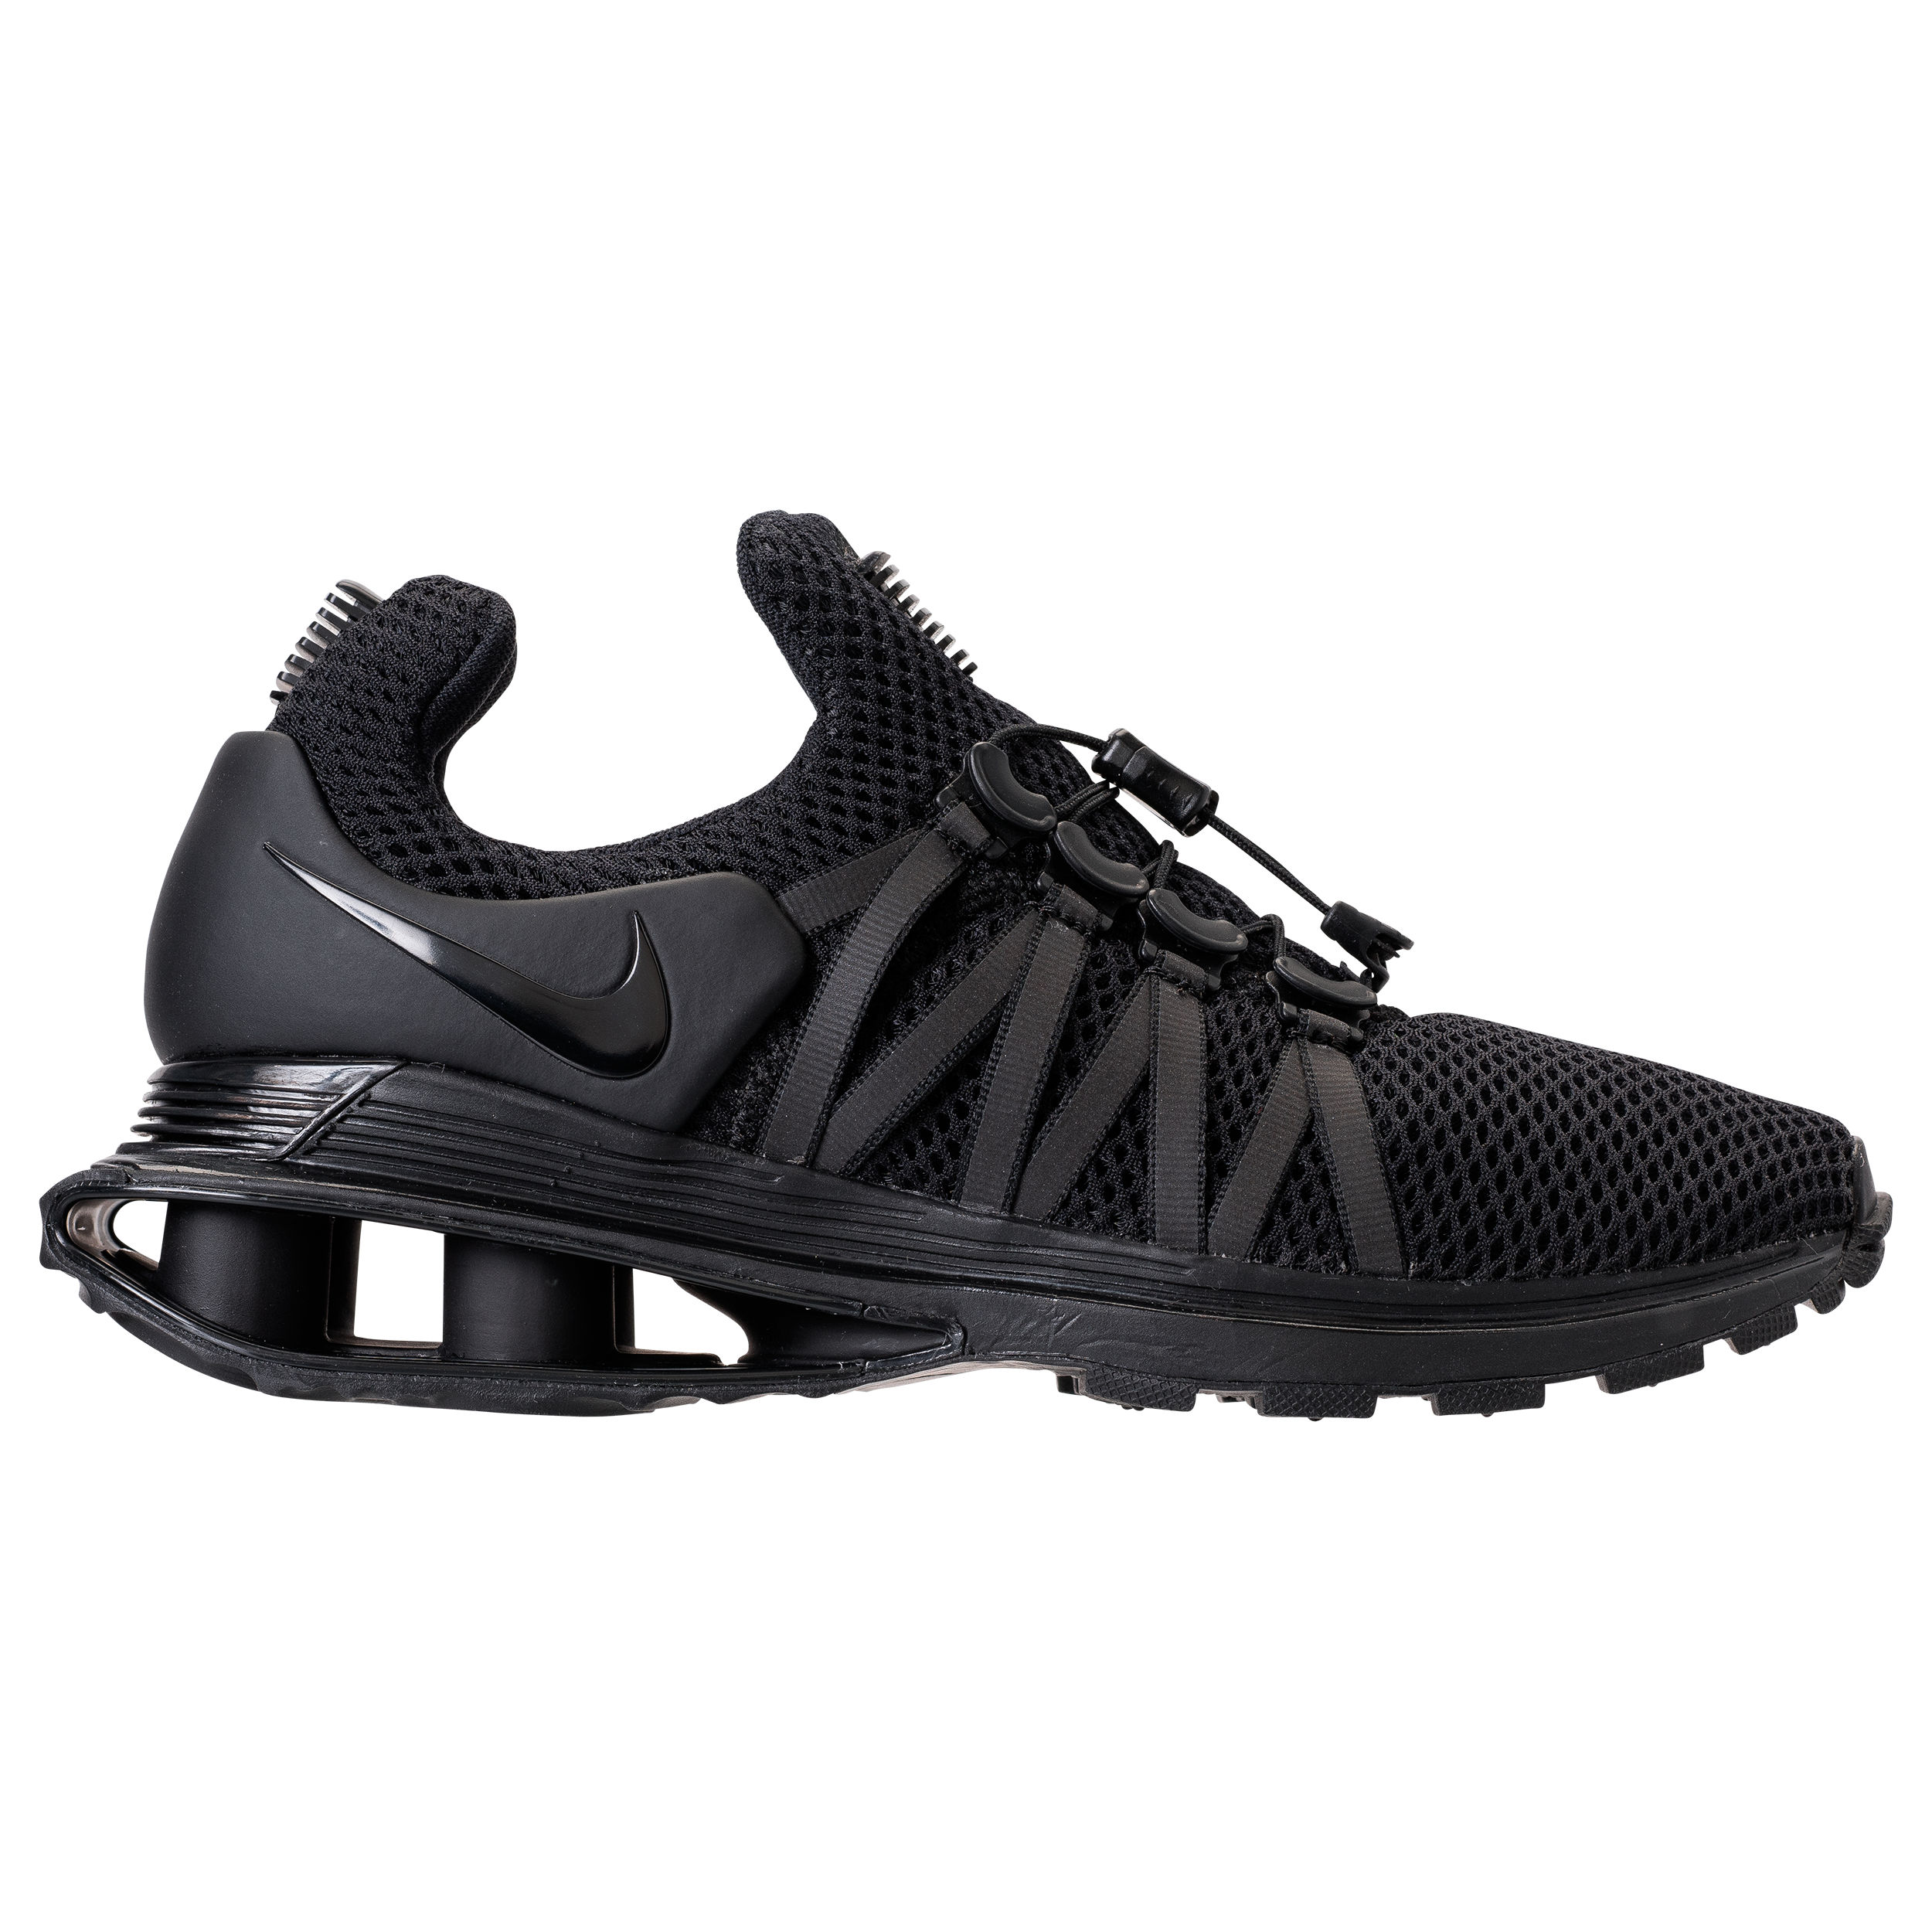 Two New Women s Colorways of the Nike Shox Gravity Drop at Eastbay ... 4d737163a